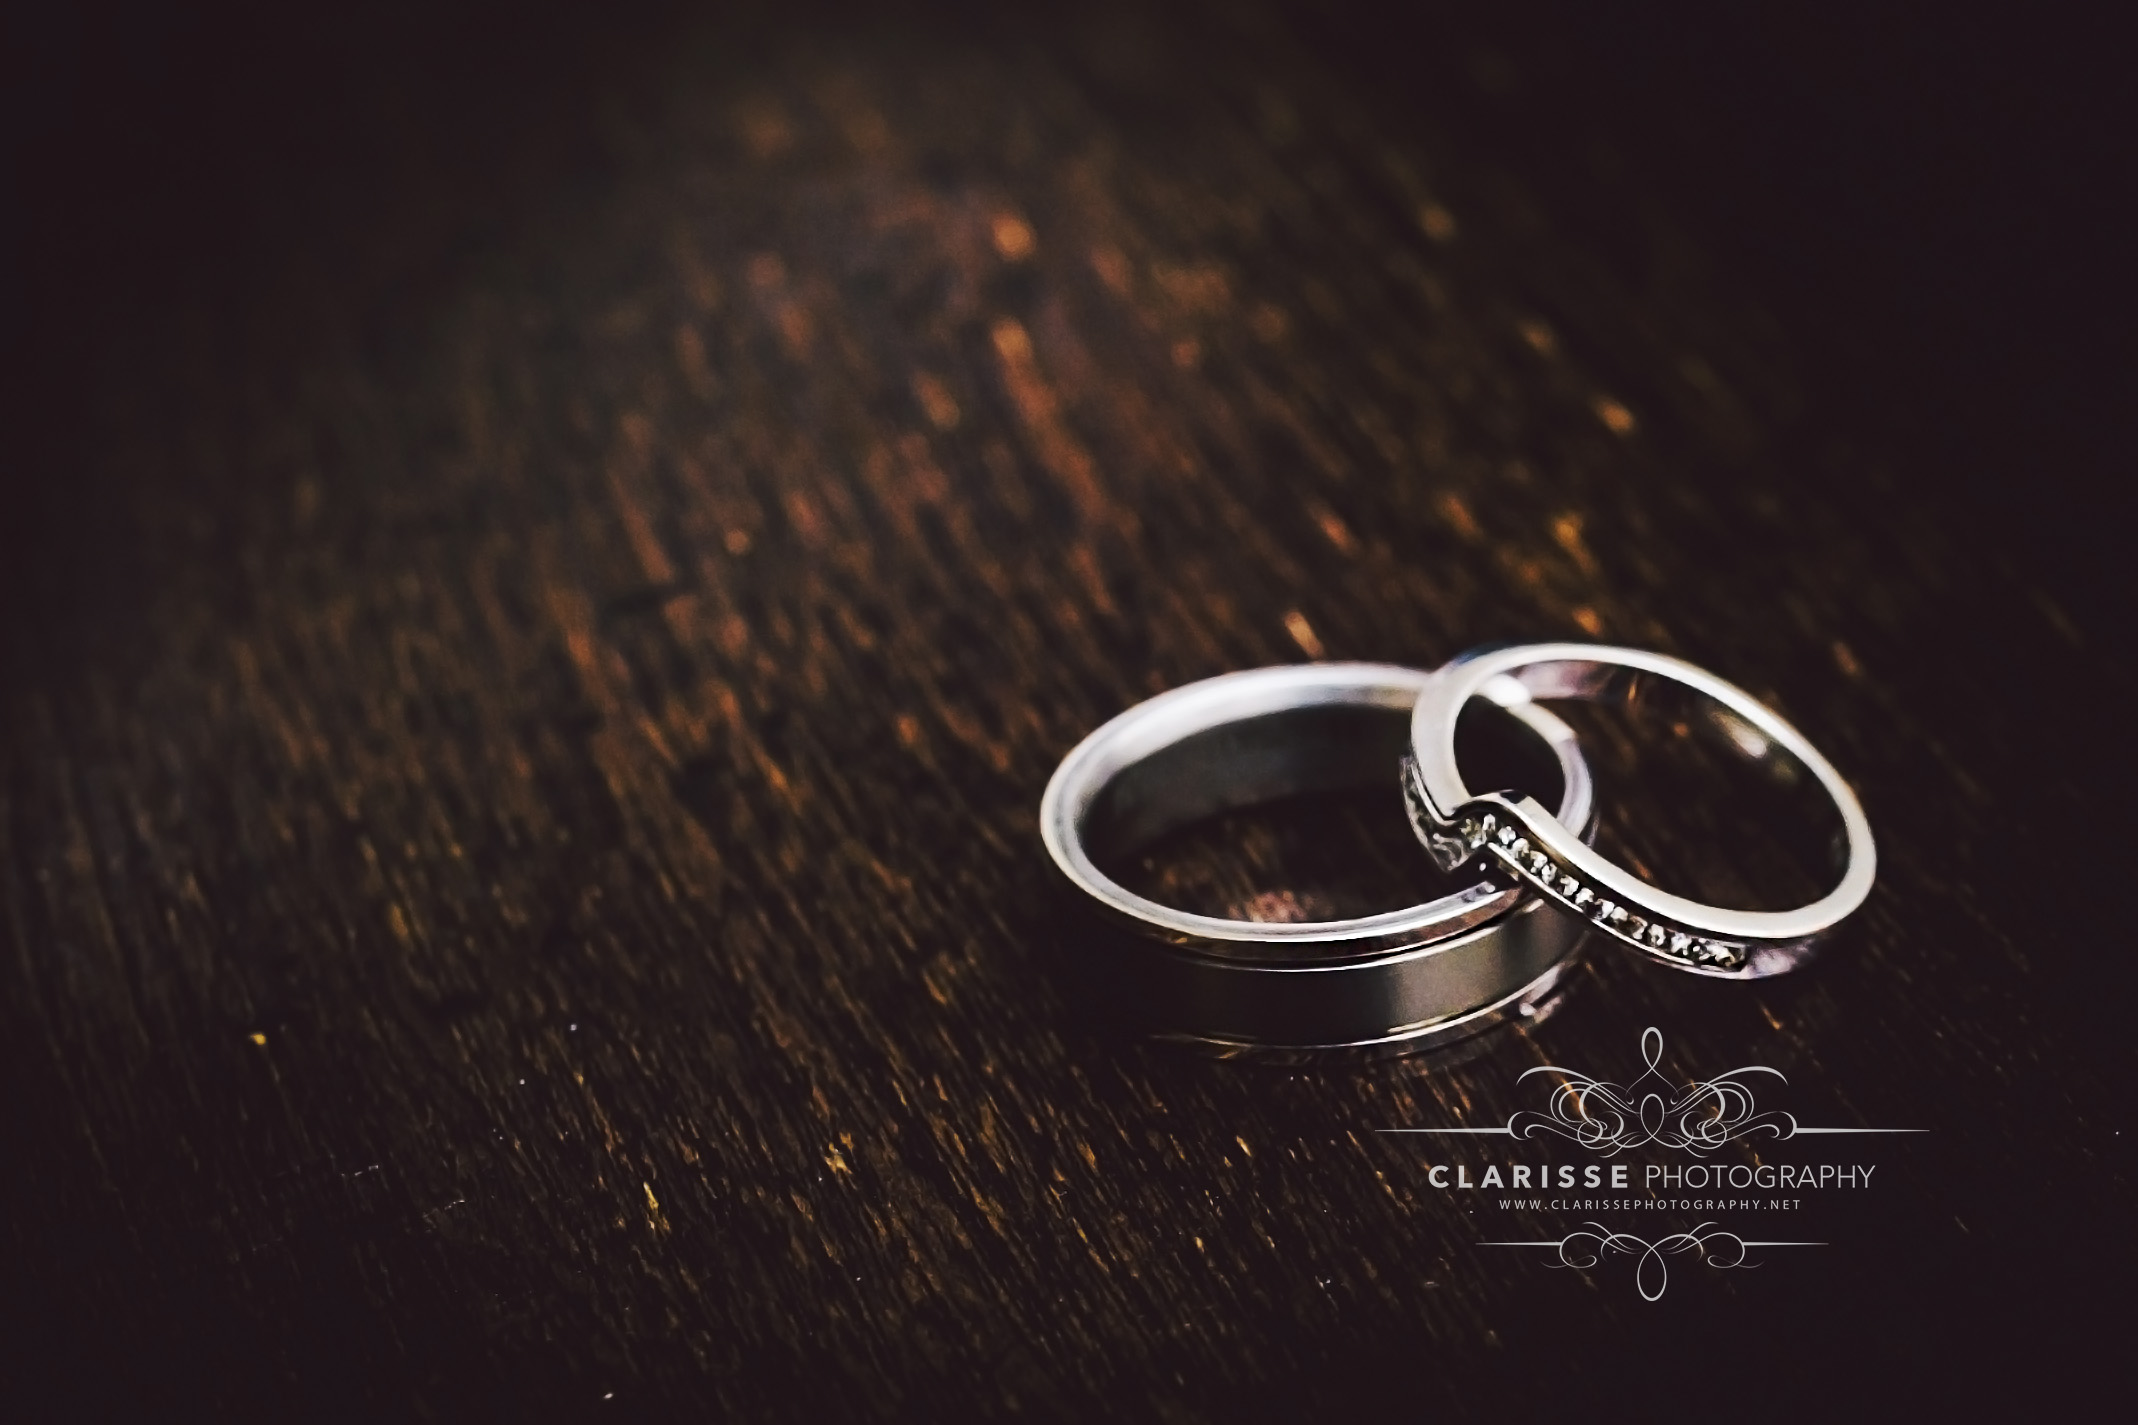 Diane_and_Rogan-Rings1.jpg